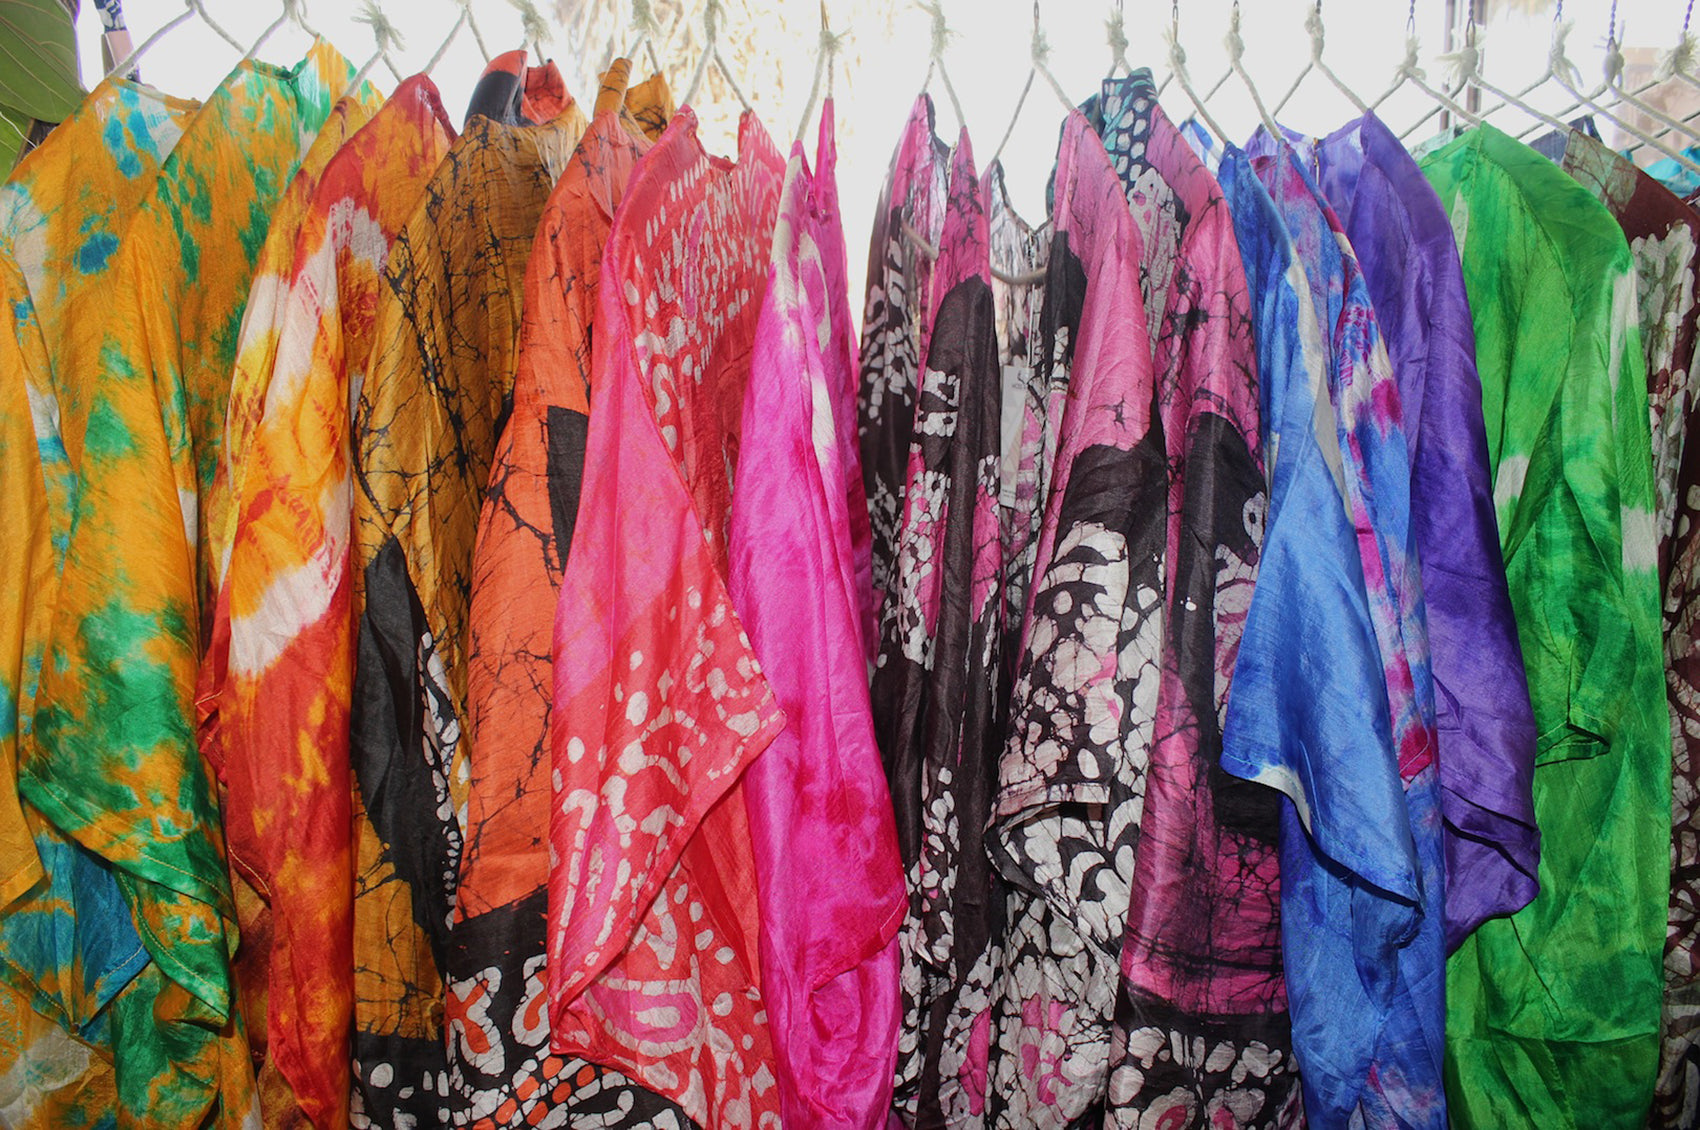 Rack of colorful dresses.